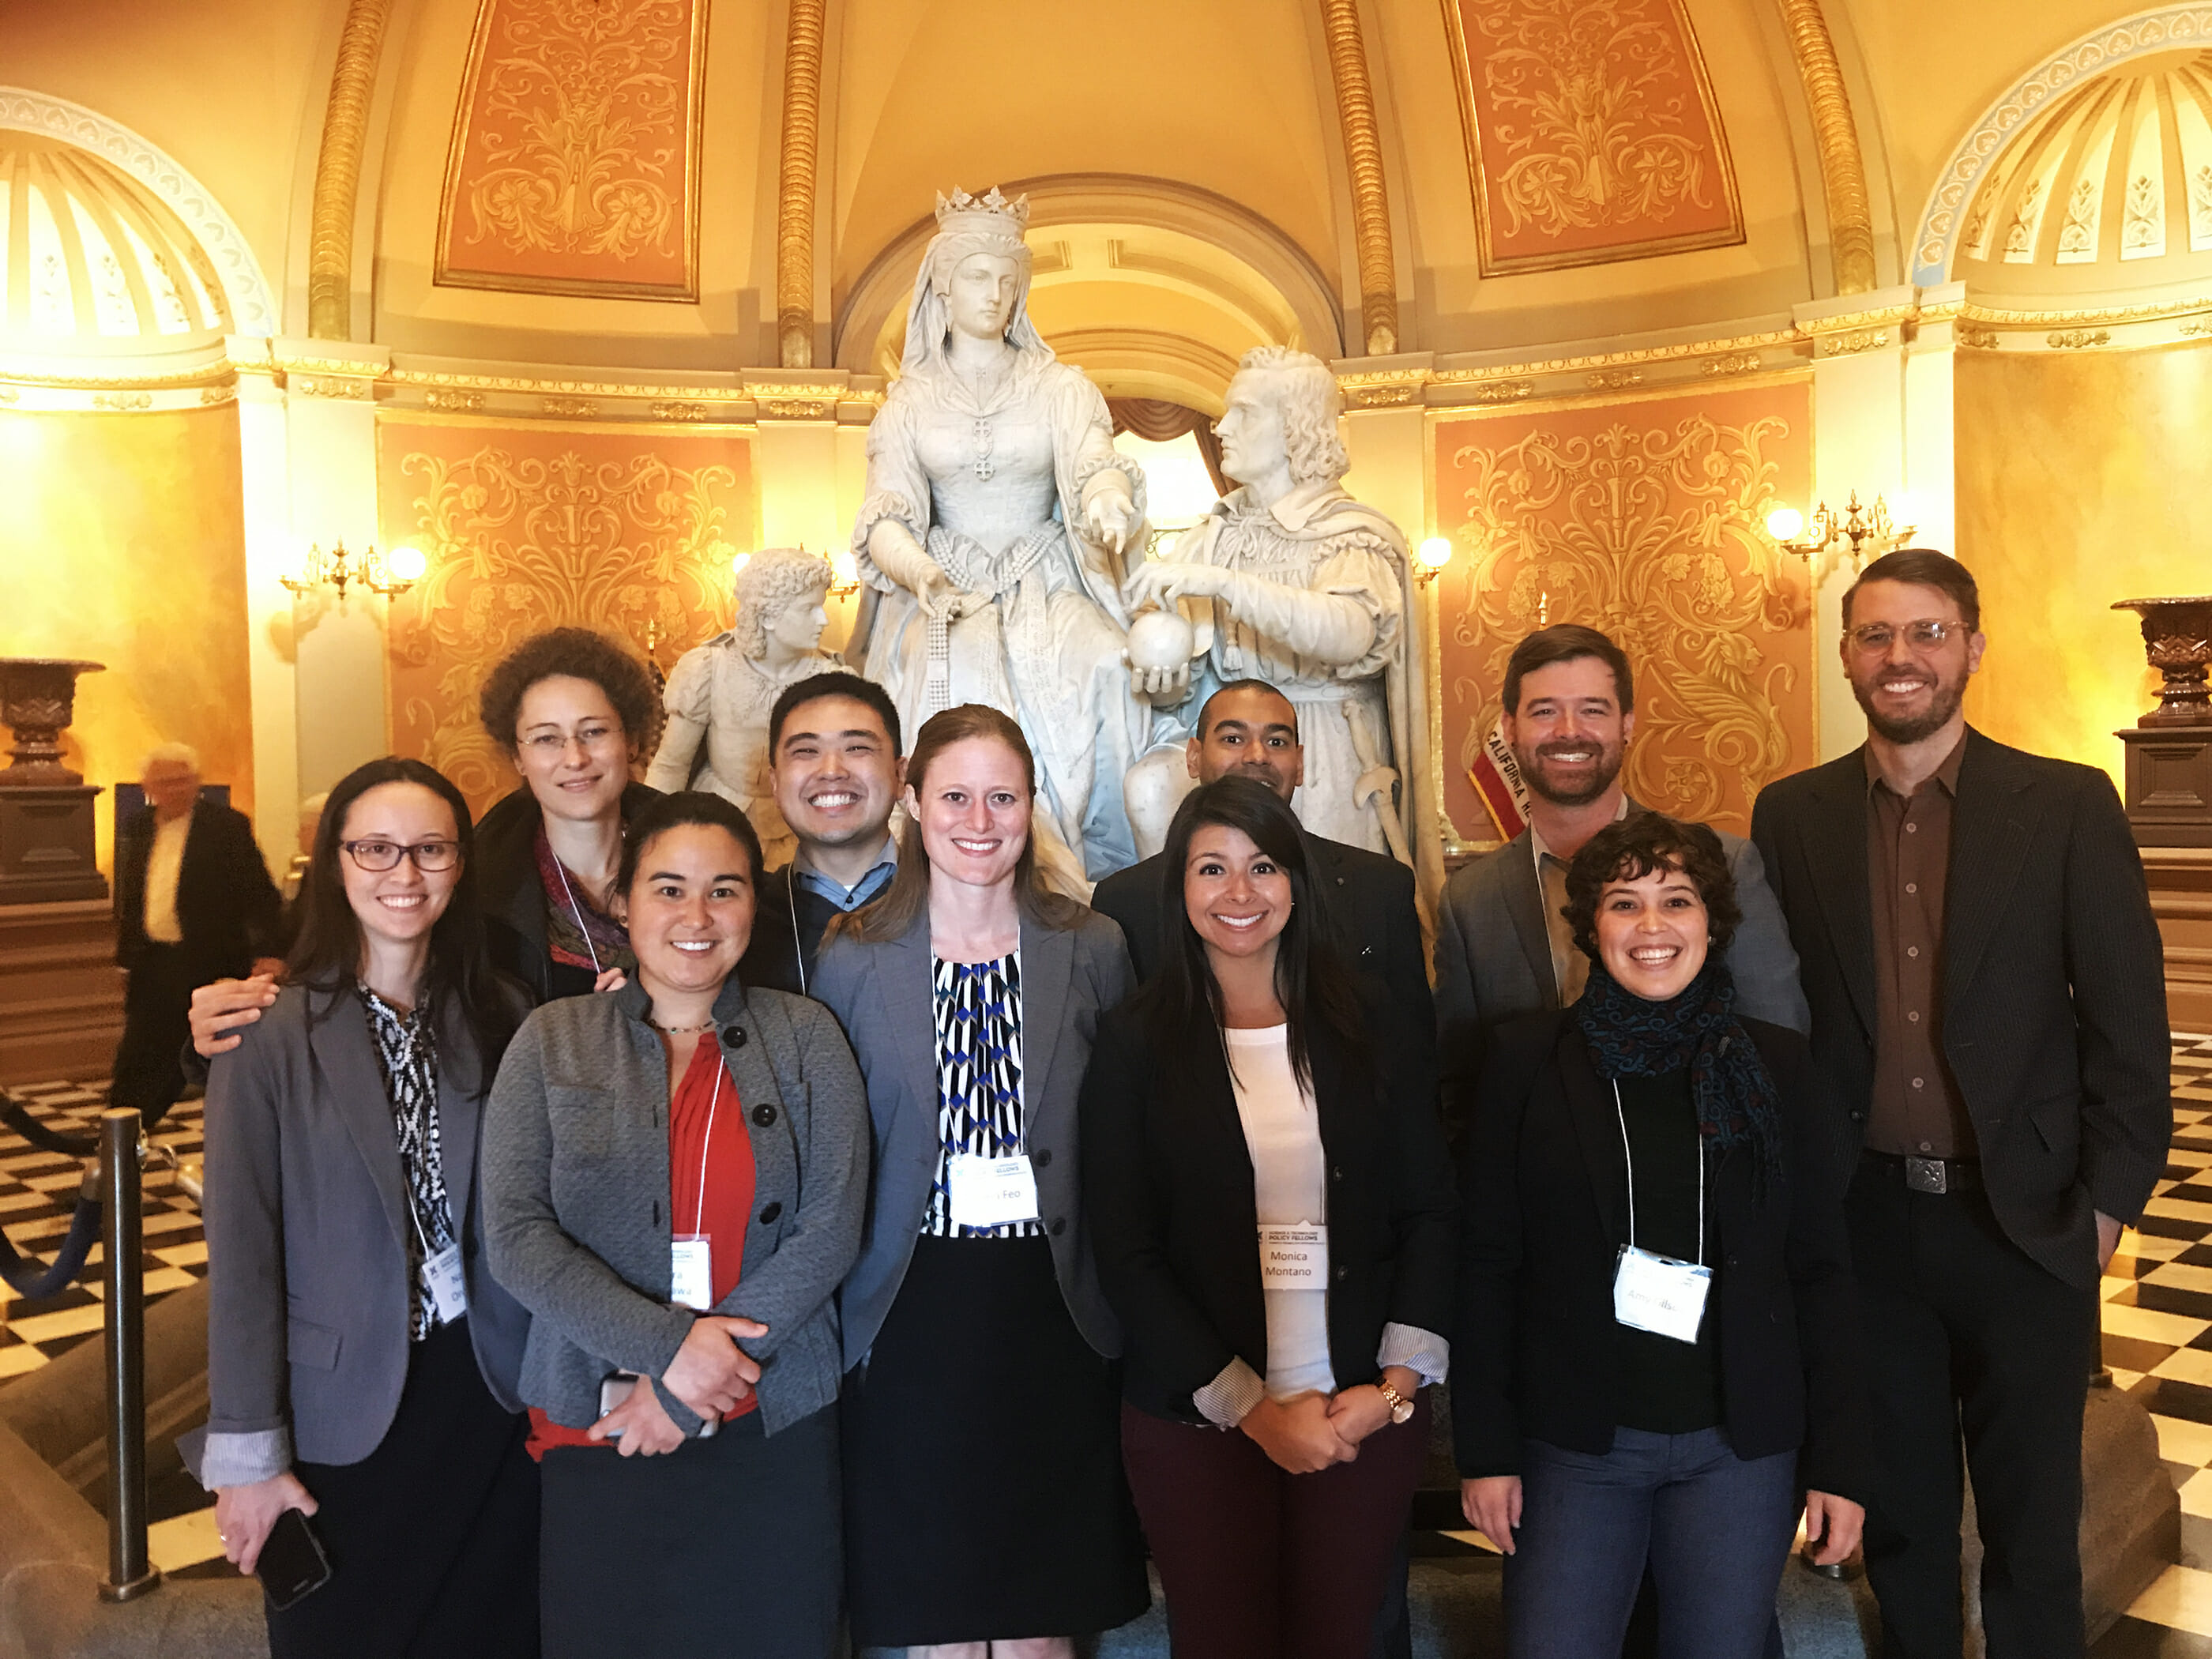 The 2018 CCST Science & Technology Policy Fellows tour the California State Capitol rotunda during their